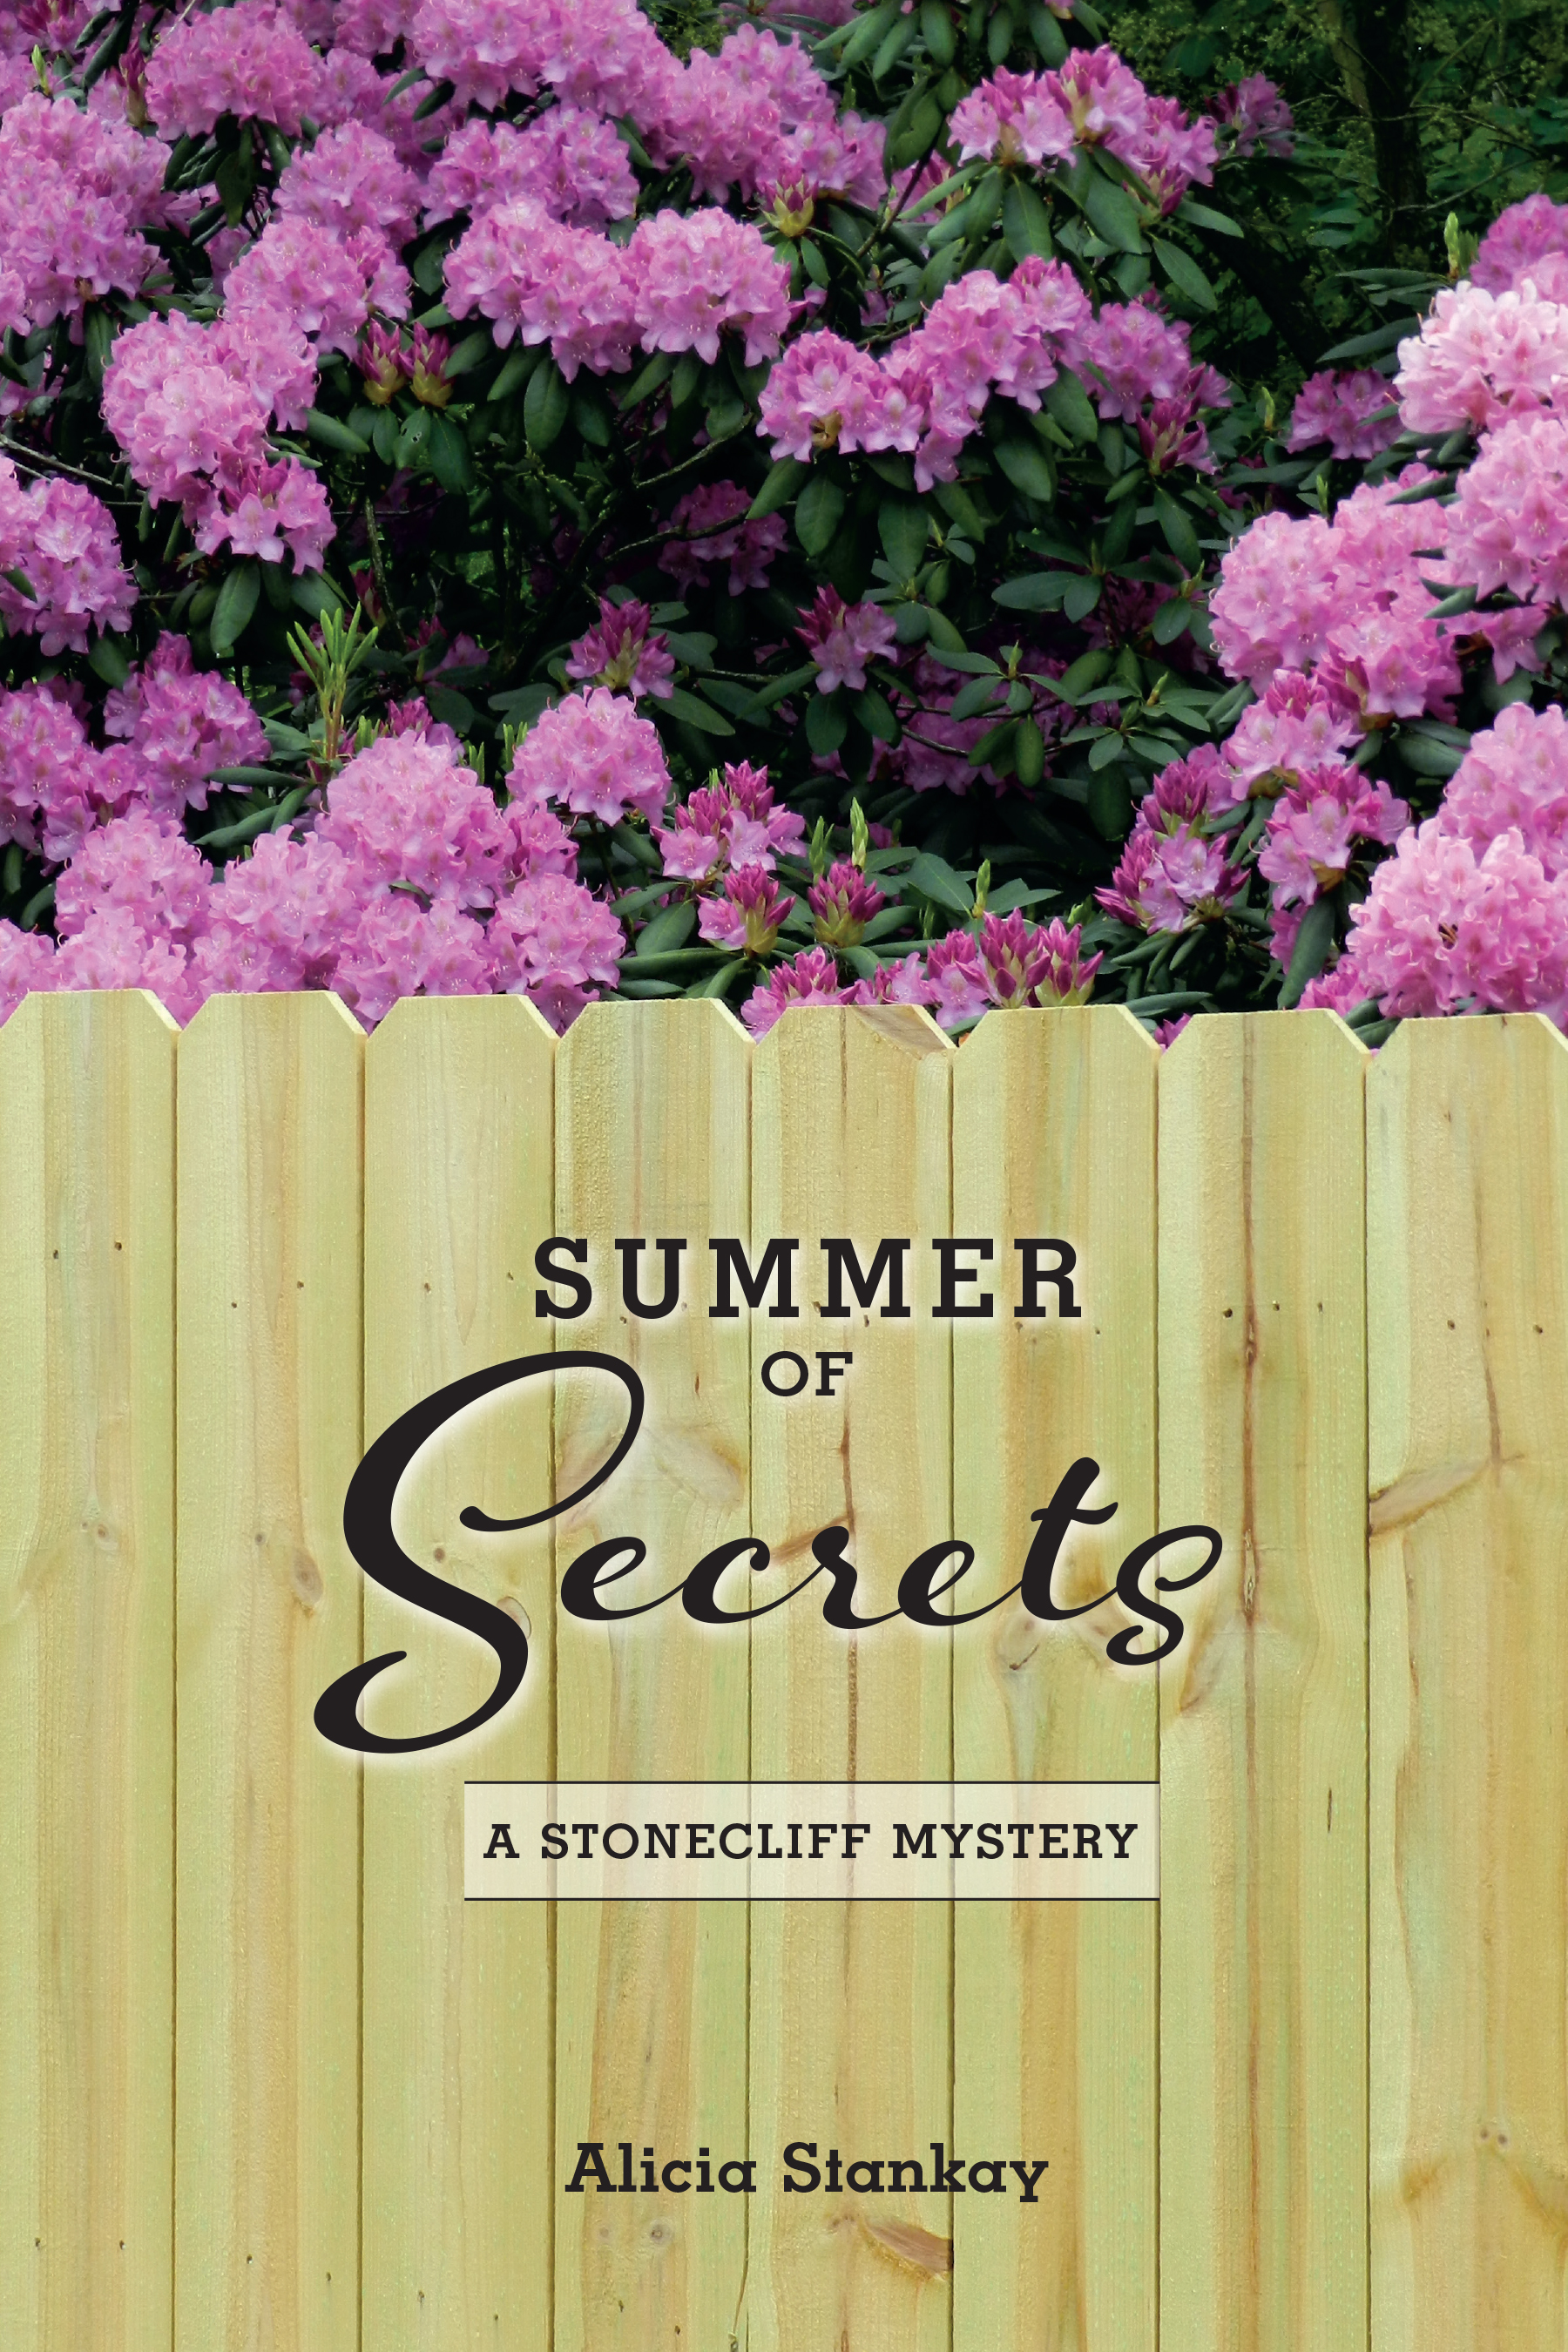 Summer of Secrets: A Stonecliff Mystery